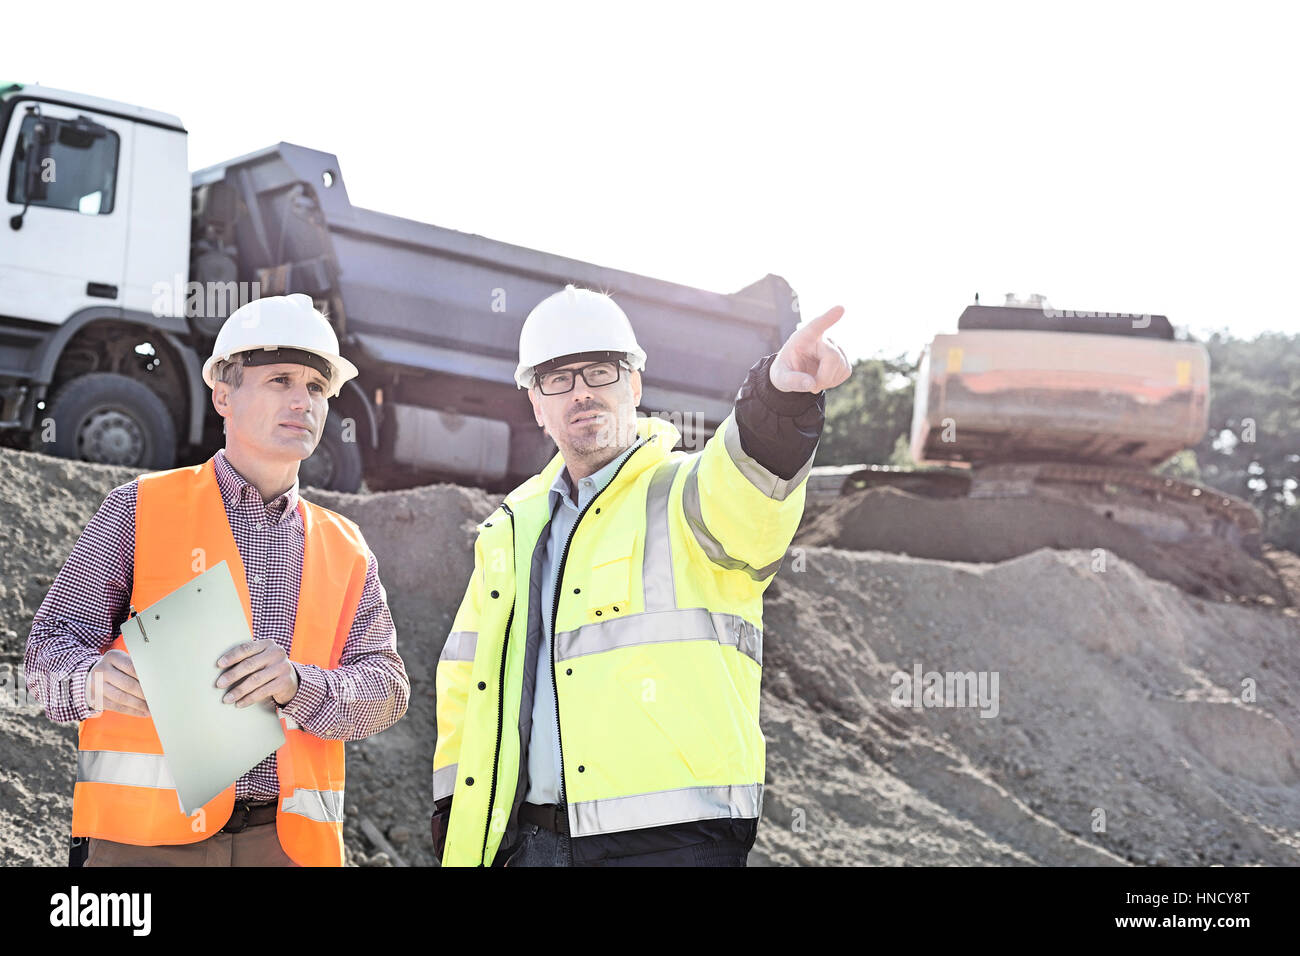 Supervisor showing something to colleague while discussing at construction site Stock Photo